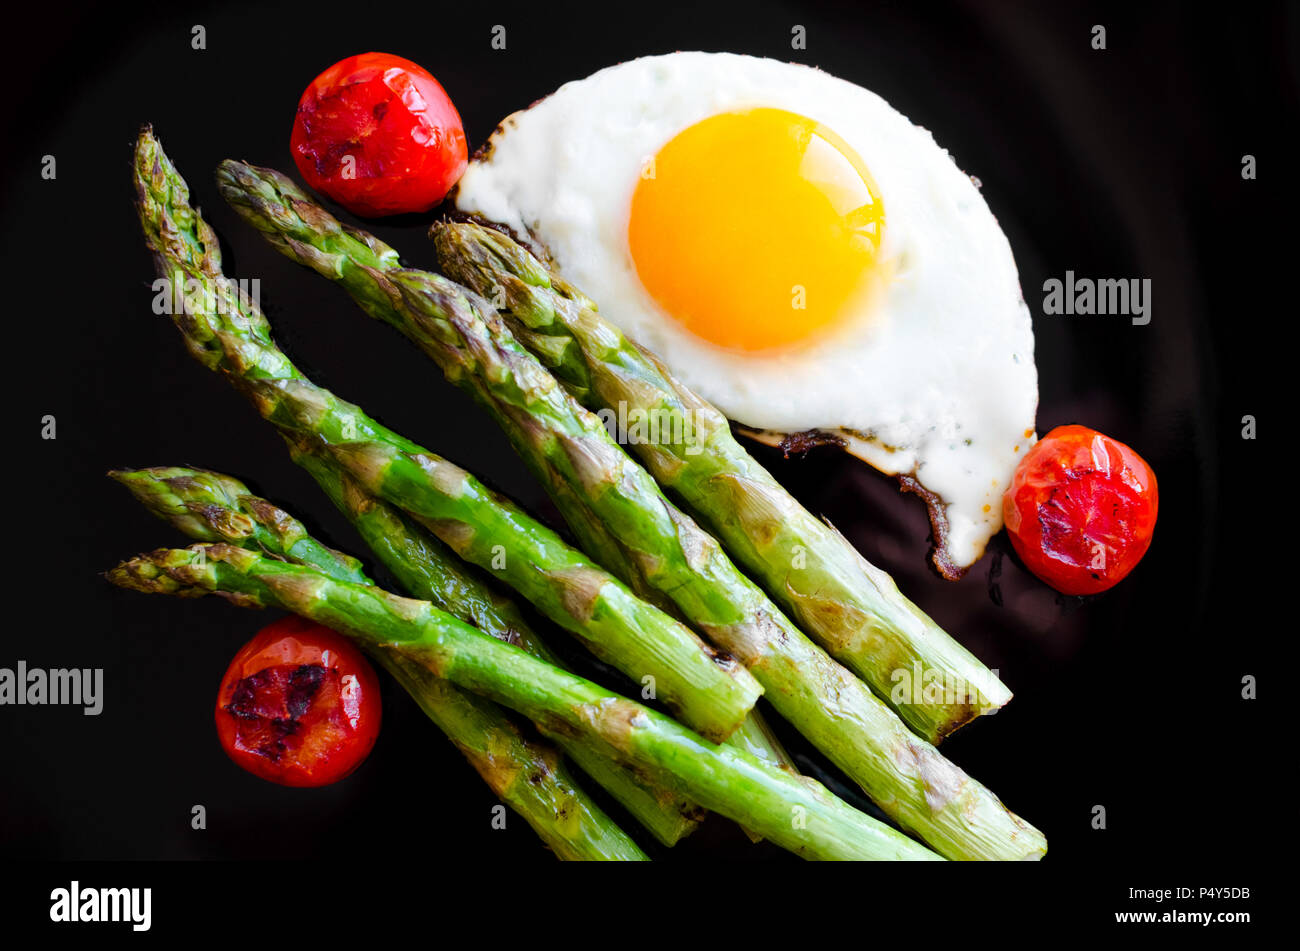 Fried egg and roasted fresh asparagus with tomatoes cherry in black plate. Healthy lunch concept. Delicious, nutritious eating. Top view. - Stock Image